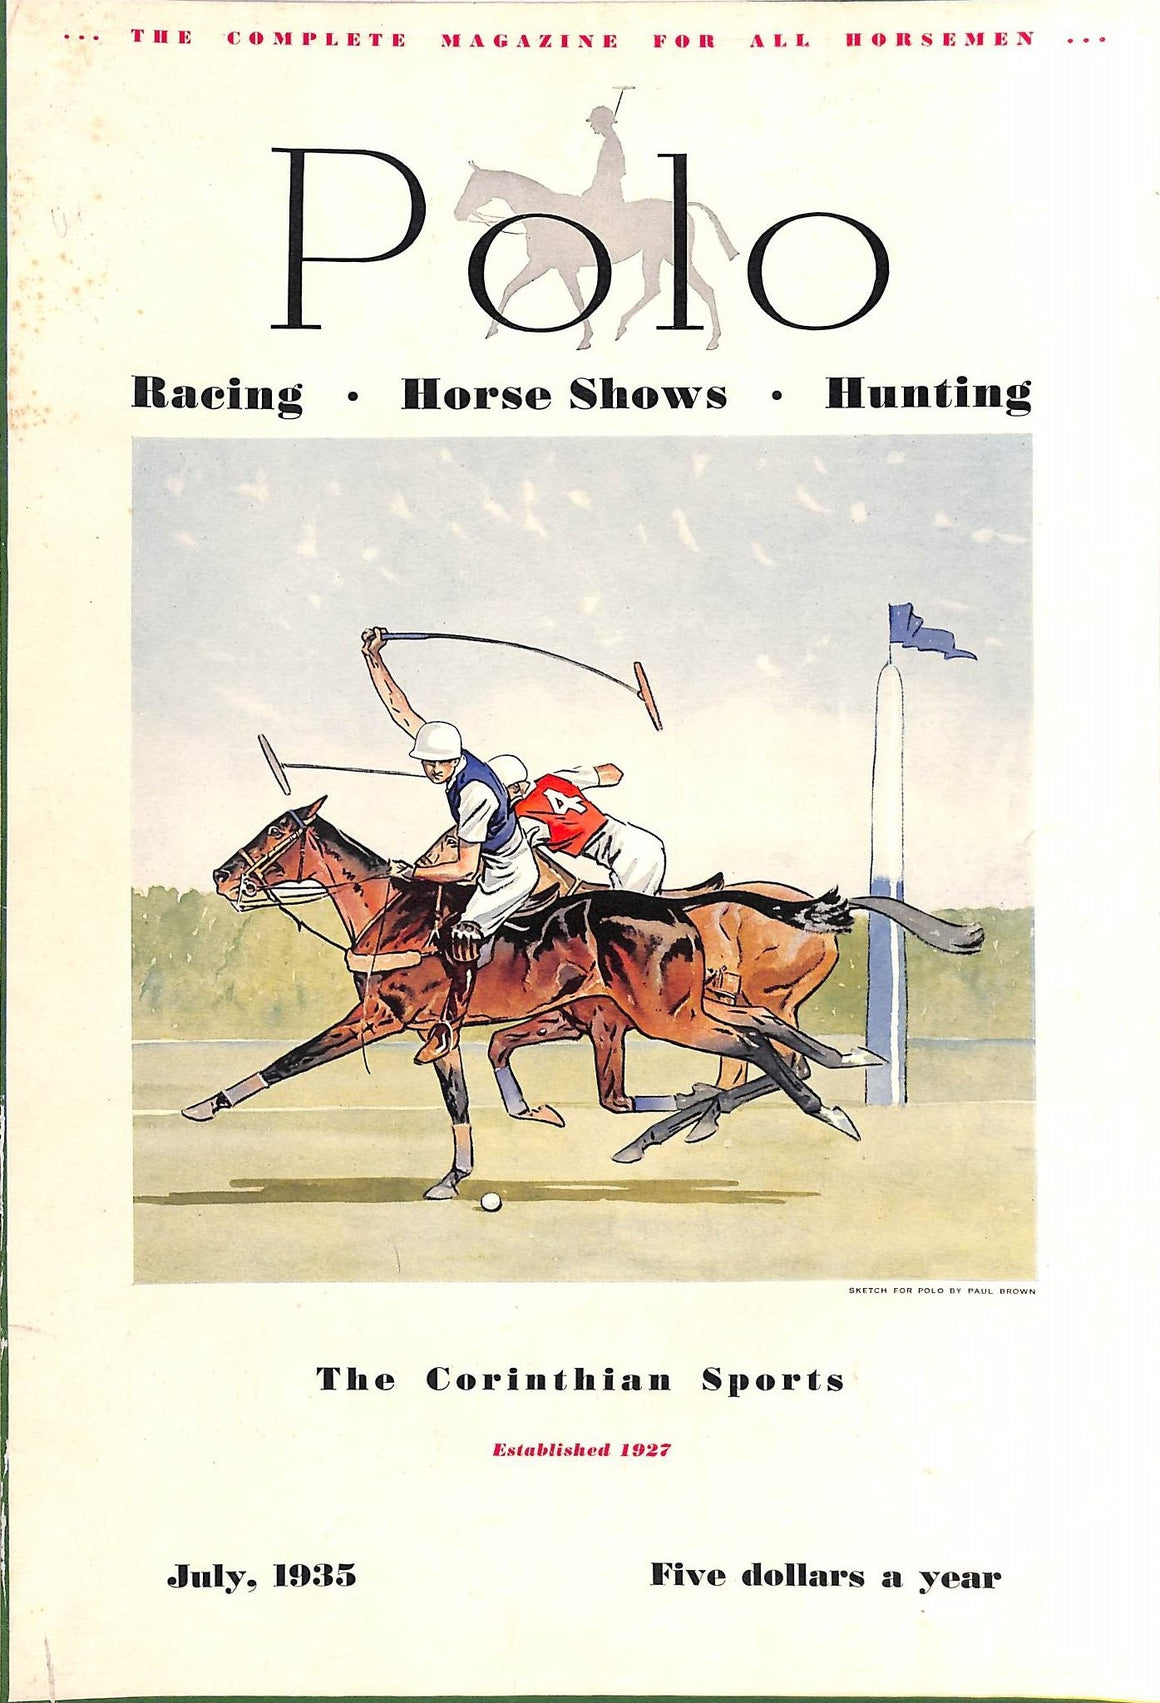 Polo Magazine July, 1935 w/ Paul Brown Cover